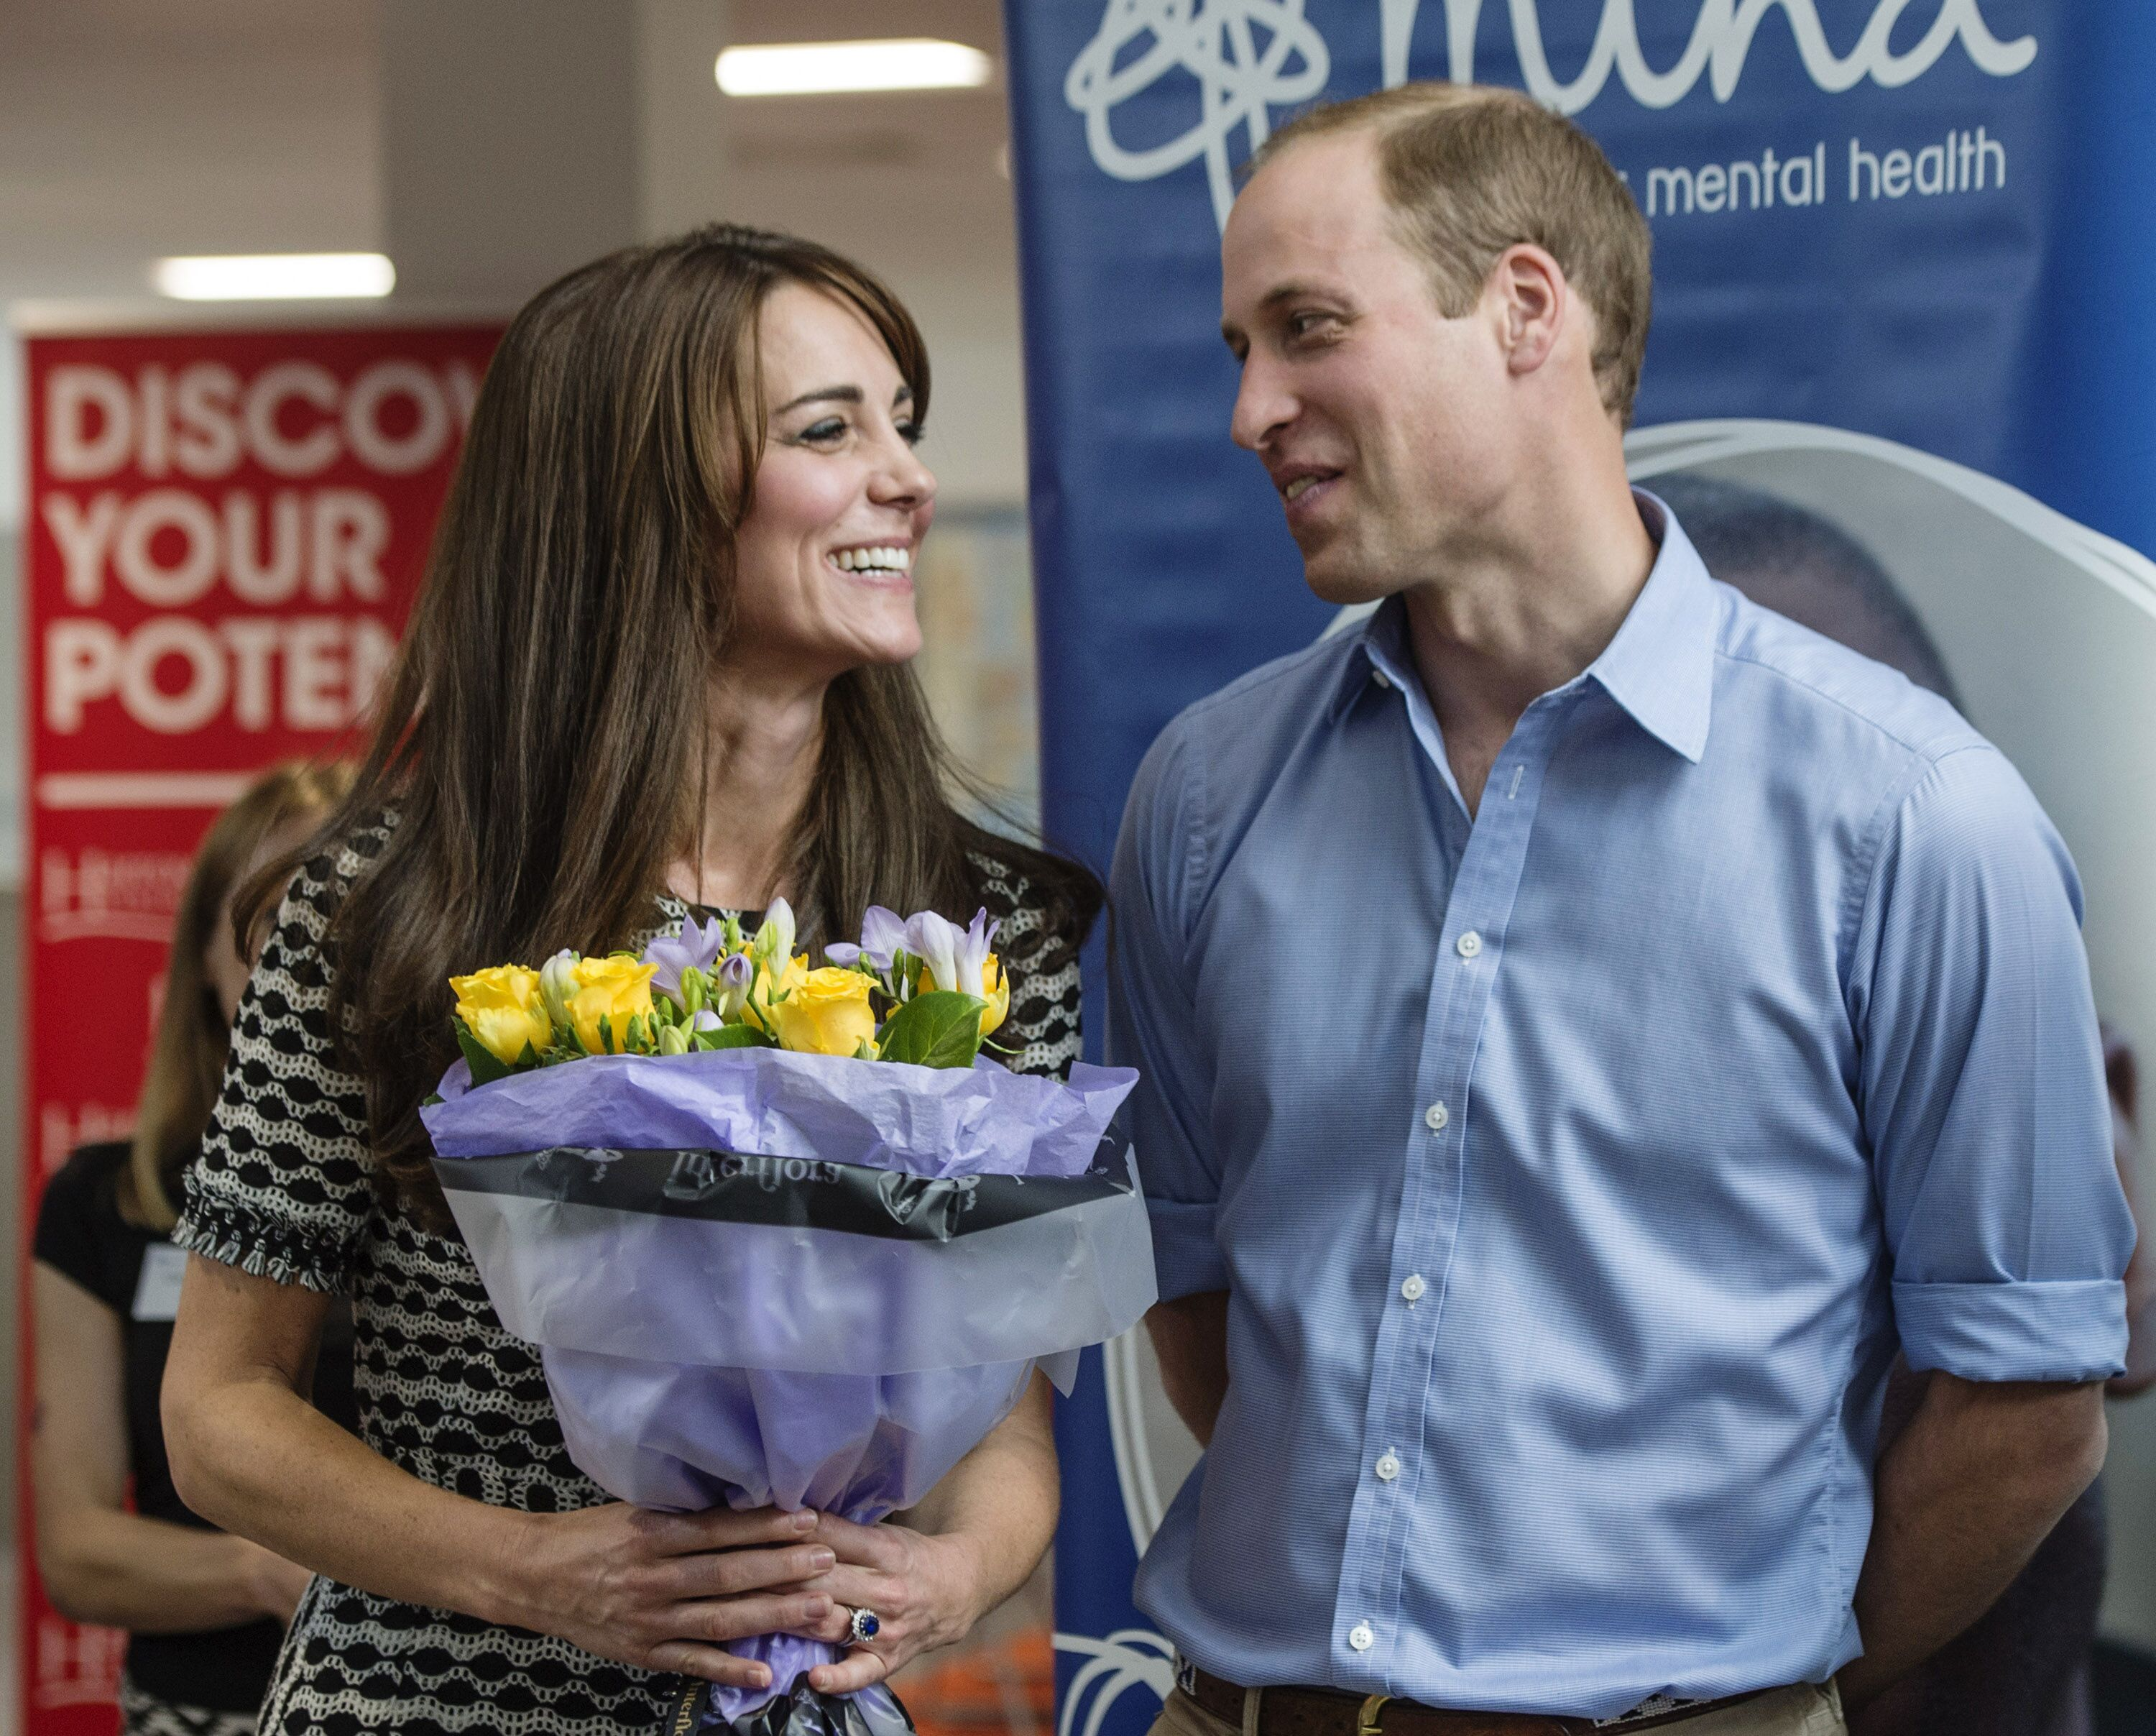 Prince William, Duke of Cambridge and Catherine, Duchess of Cambridge attend an event hosted by Mind, at Harrow College to mark World Mental Health Day in Harrow, England | Photo: Getty Images